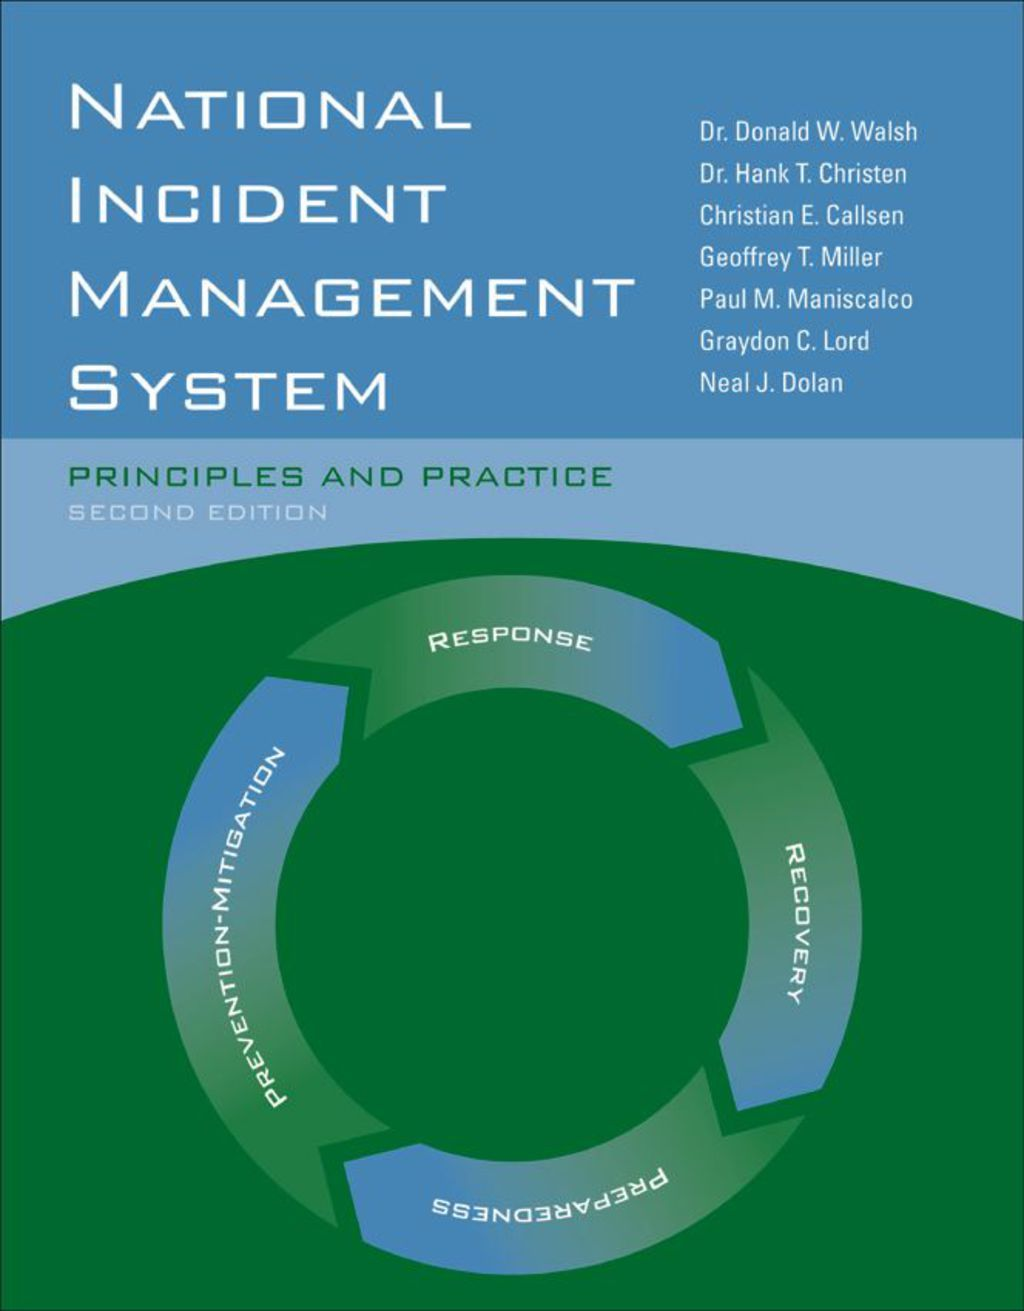 National Incident Management System Principles And Practice Ebook Rental Emergency Management Management How To Plan